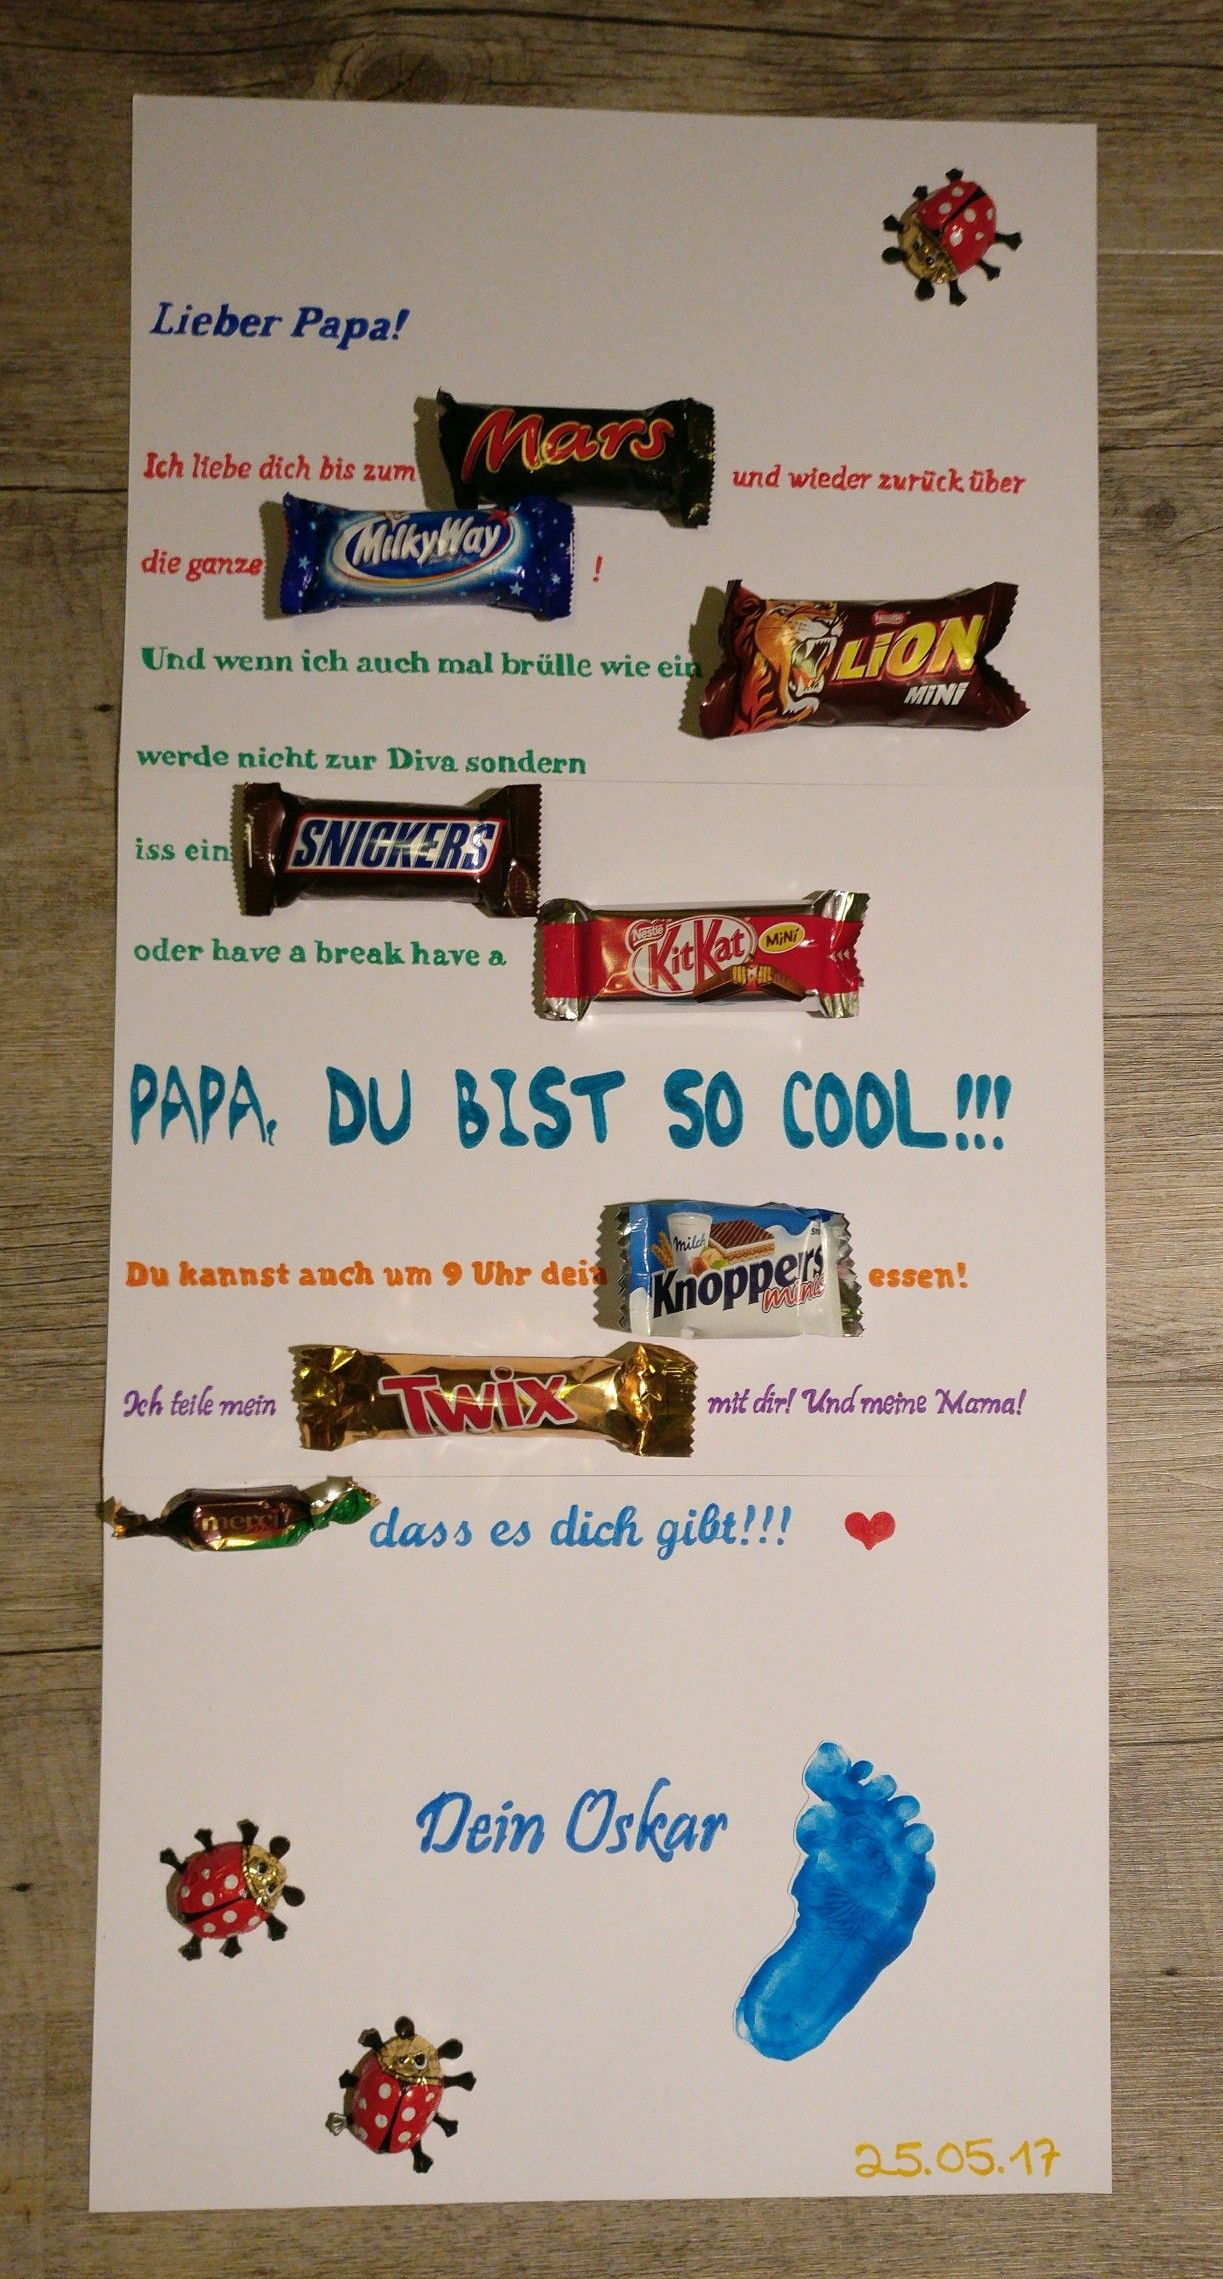 Vatertagsgeschenk Kinder Vatertag Mars Milky Way Lion Snickers Kit Kat Knoppers